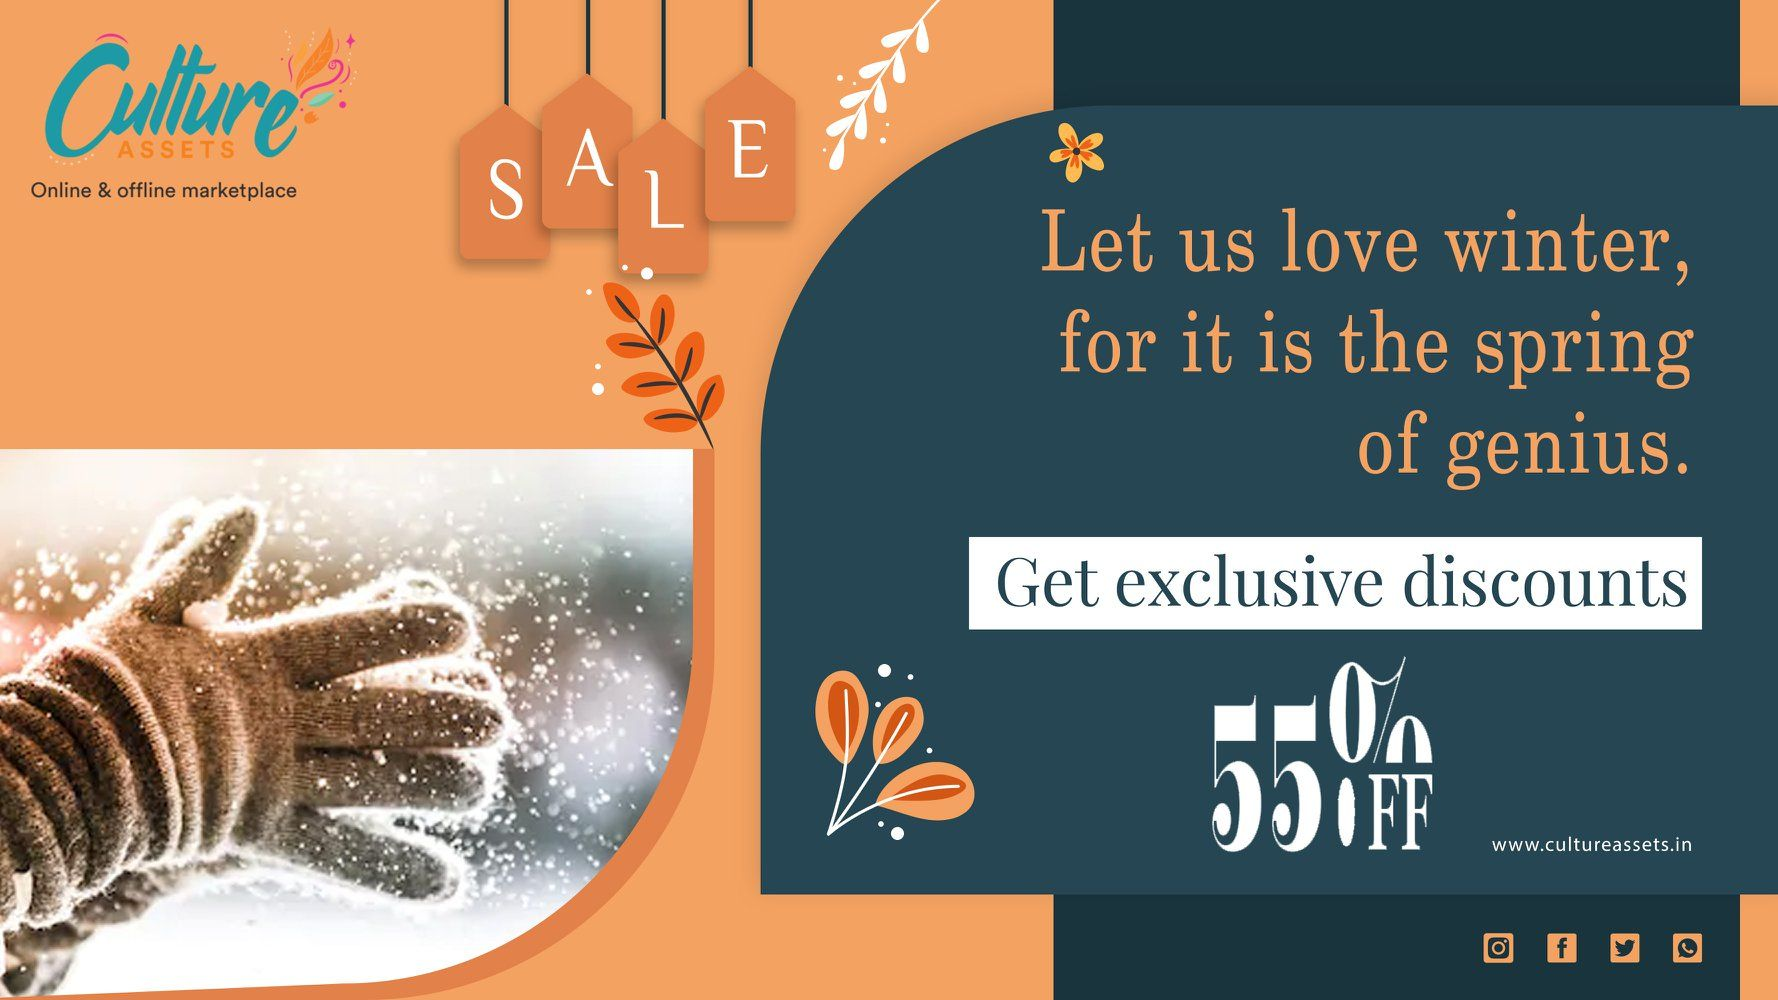 Buy best quality winter gloves online on Culture Assets. . . . . #wintergloves #gloves #leathergloves #cyclinggloves #sarungtanganwinter #touchscreengloves #motorbikegloves #mechanicgloves #sarungtangankulit #sarungtangan #racinggloves #fitnessgloves #weightliftinggloves #horseridinggloves #footballgloves #motorbikejackets #usa #sarungtangantouchscreen #fashion #sarungtanganmotor #leather #fashiongloves #sportsgloves #fingerlessgloves #motorbikesuits #summergloves #drivinggloves #sportswears